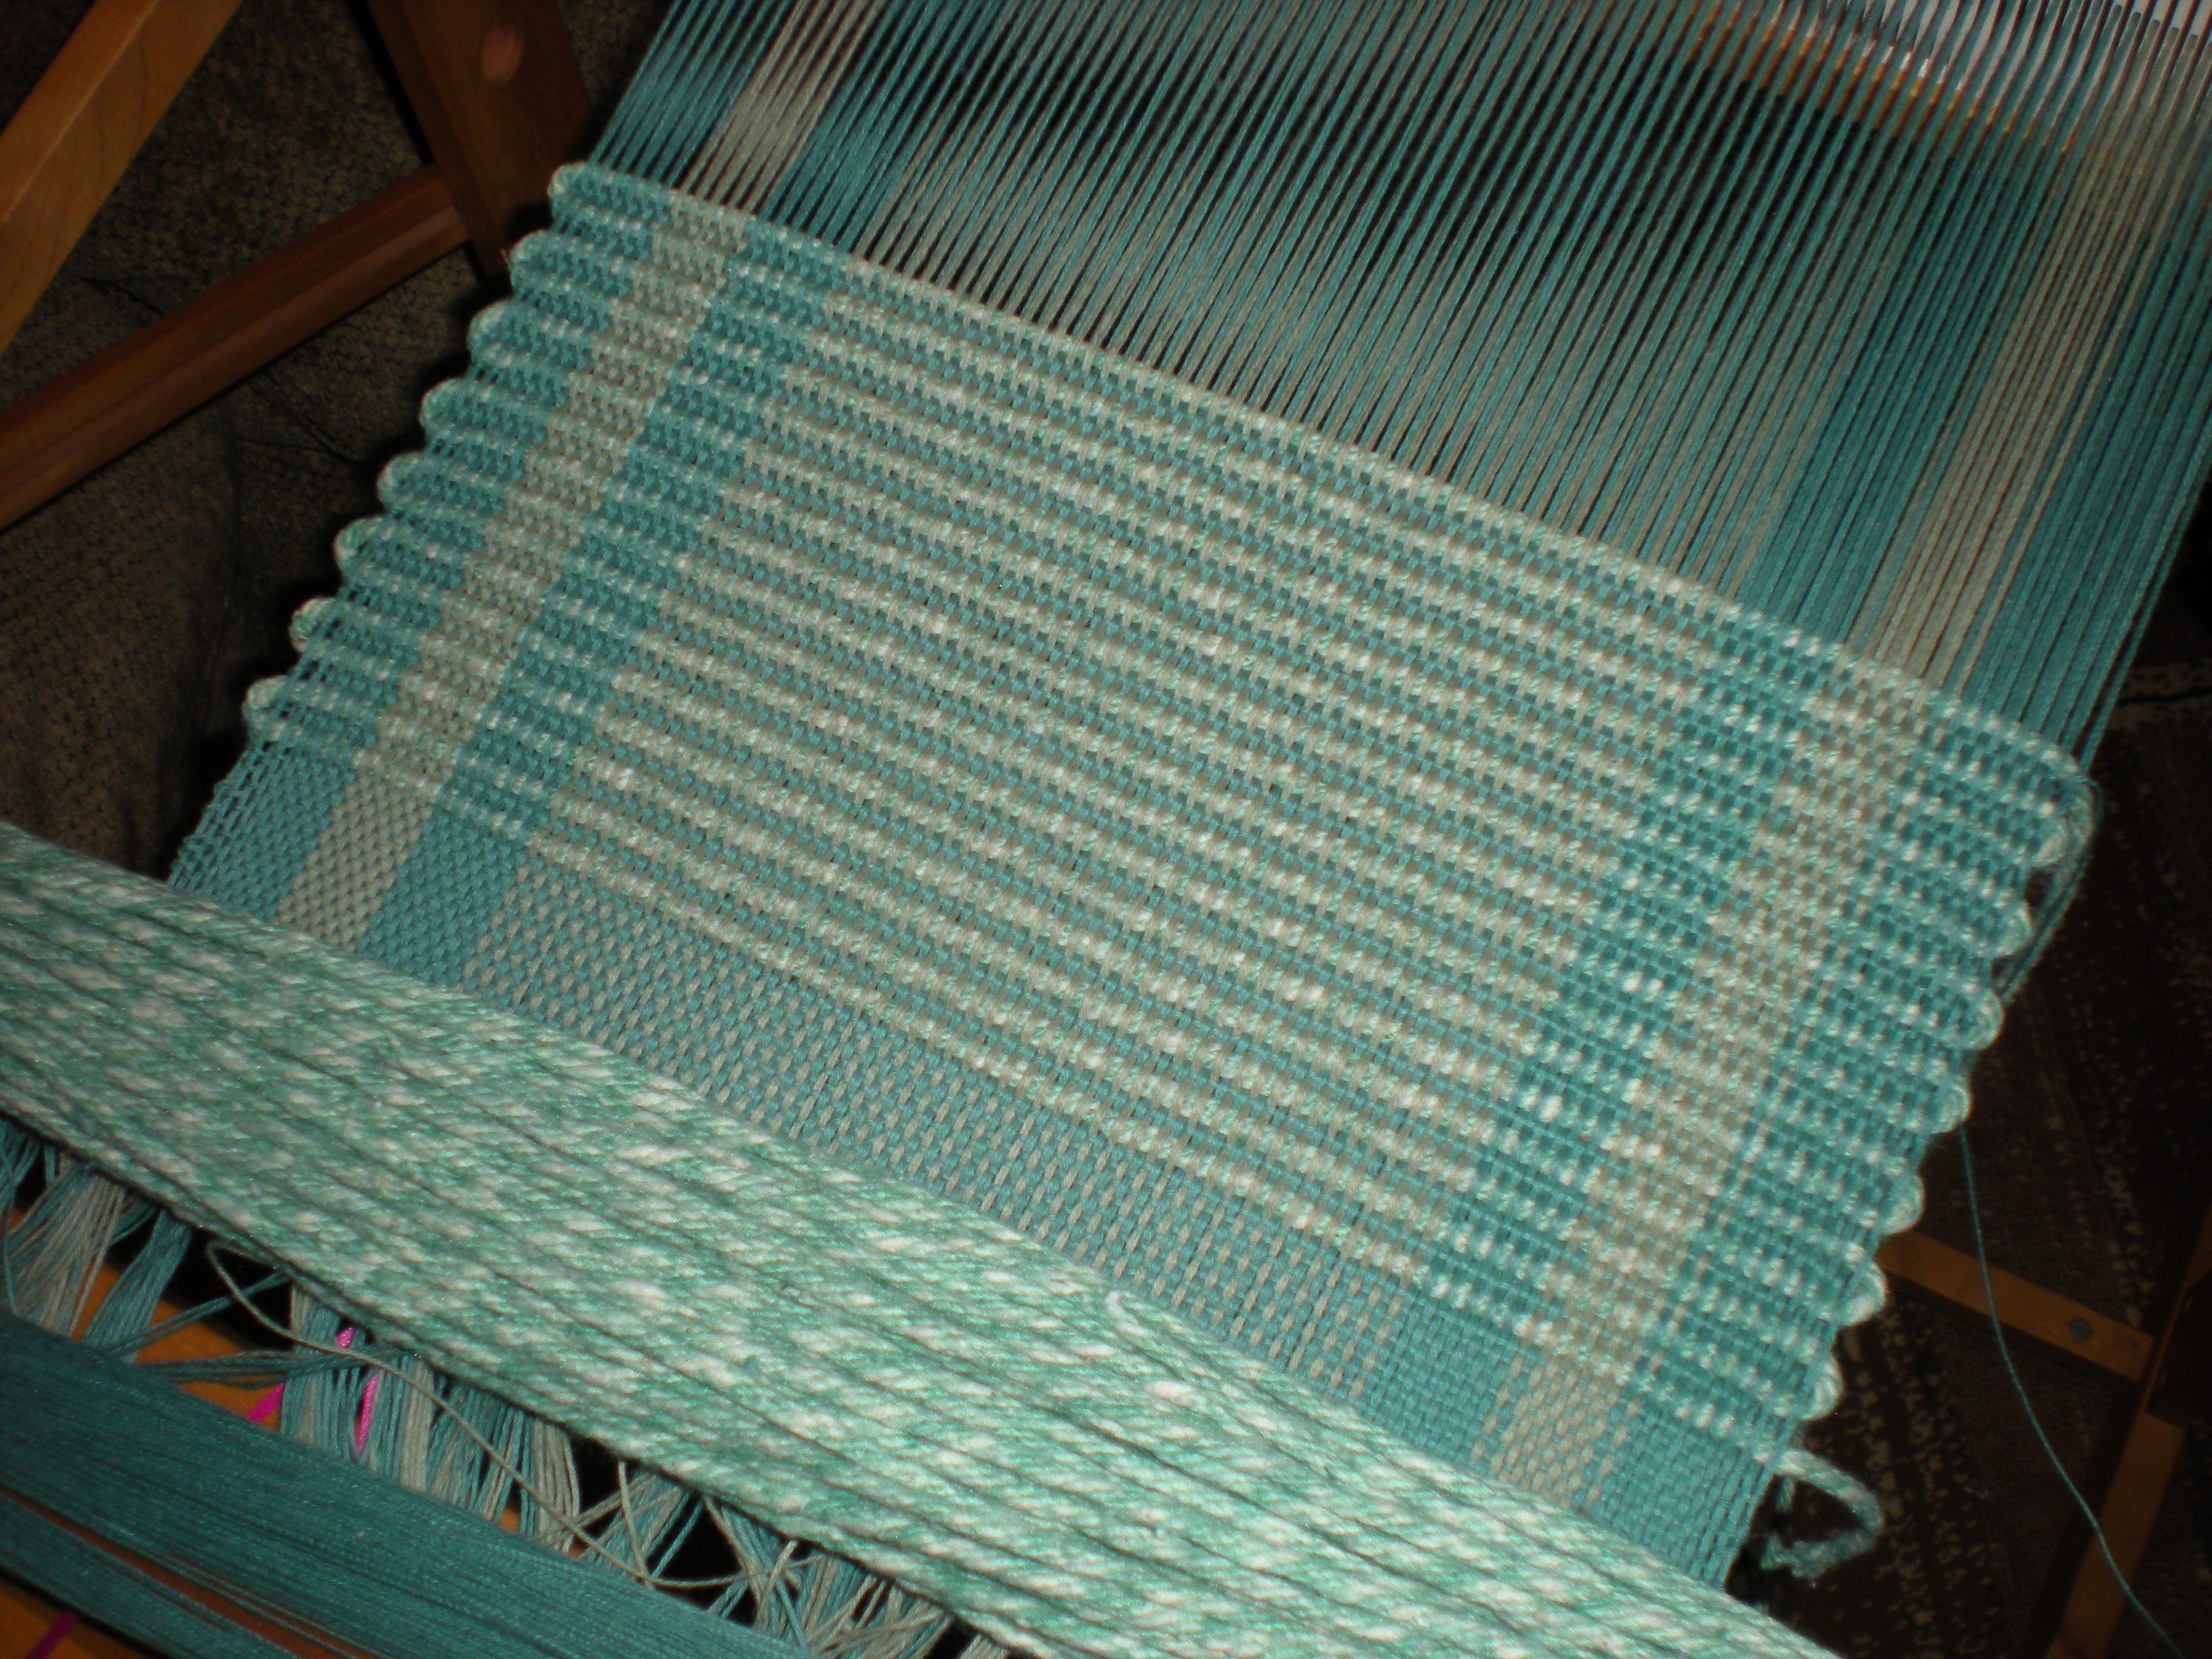 rug loom kit. weaving placemats on my rigid heddle loom rug kit